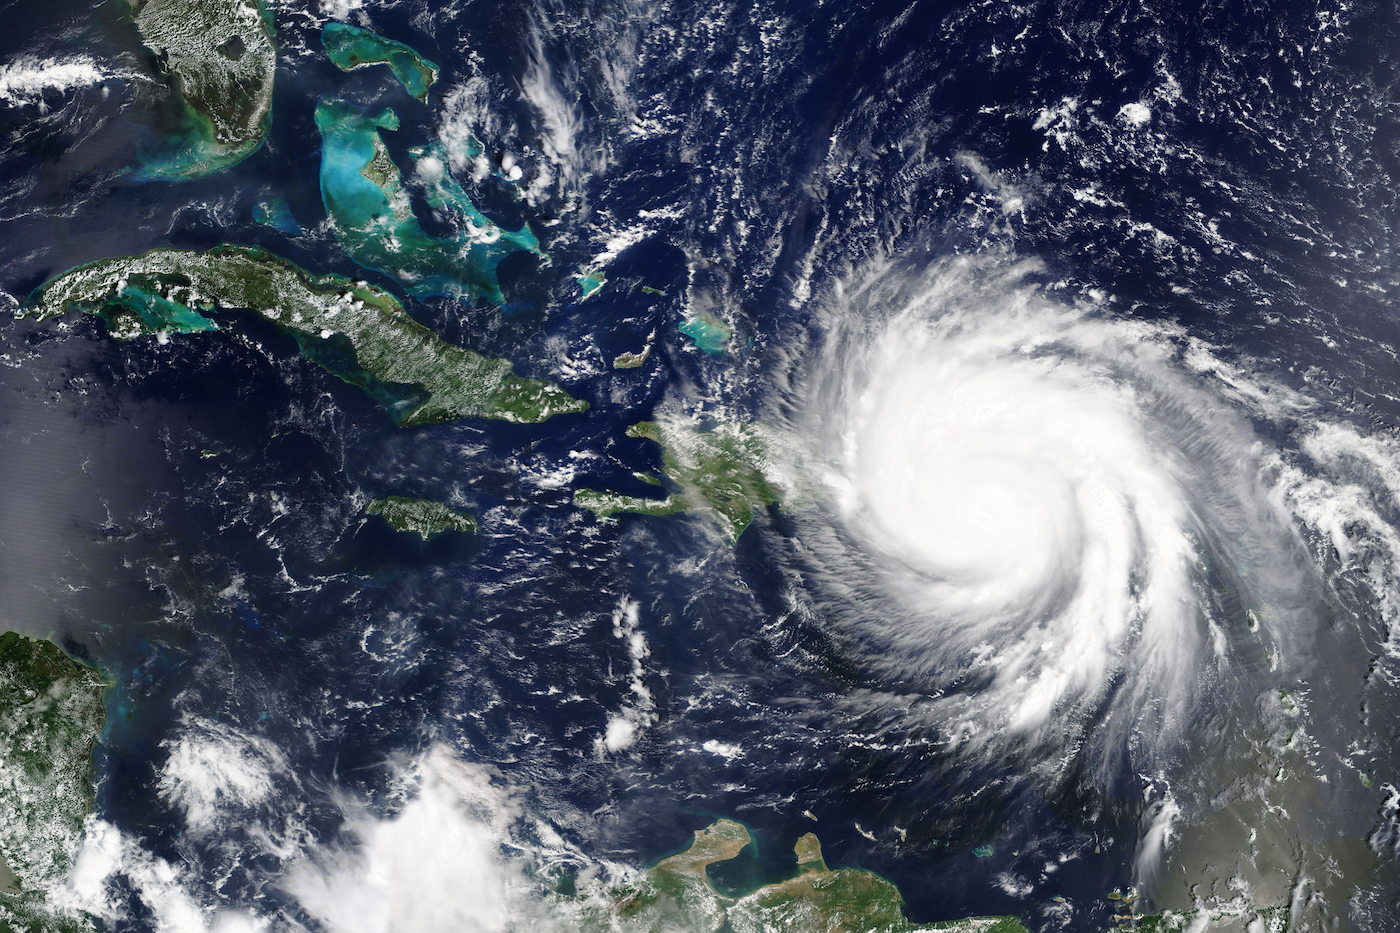 A new study found that rapid intensification, the process by which major hurricanes quickly increase their wind speed by 25 knots (28.8 miles per hour) within a 24-hour period, is happening at a stronger and faster rate compared to 30 years ago.